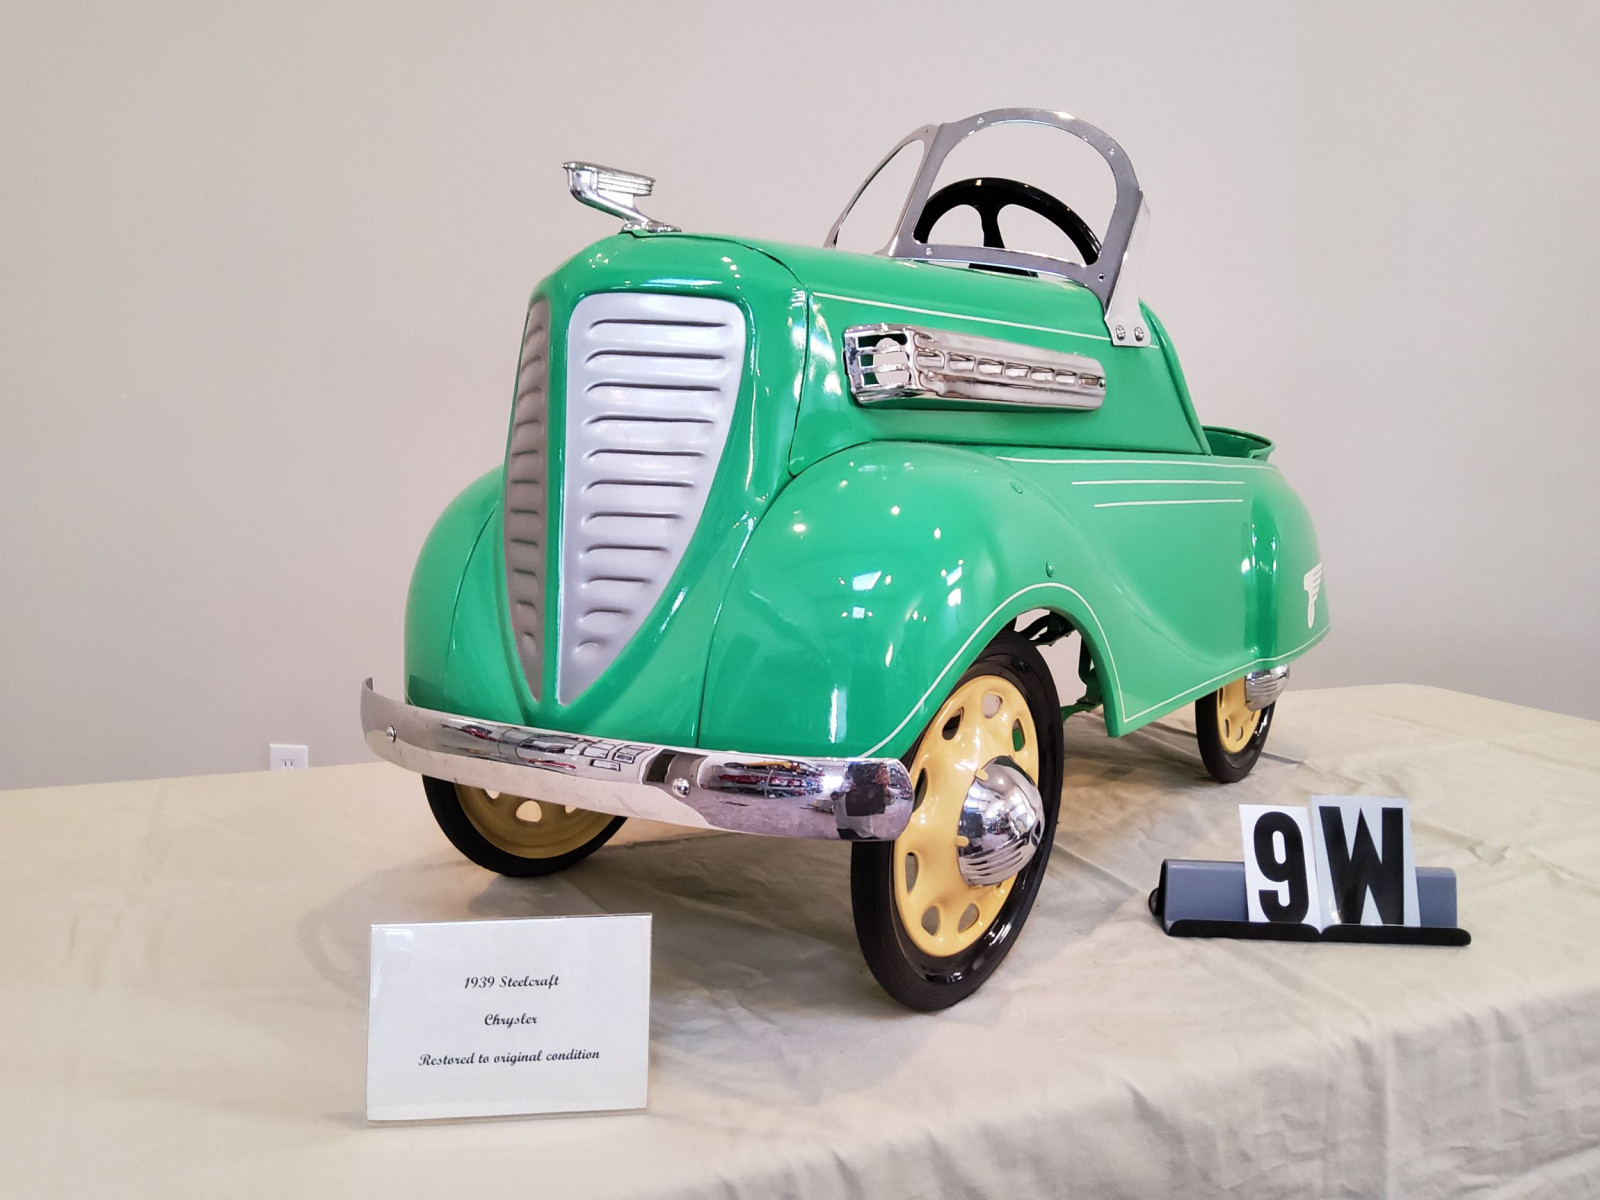 1939 Steelcraft Pedal Car - Image 2